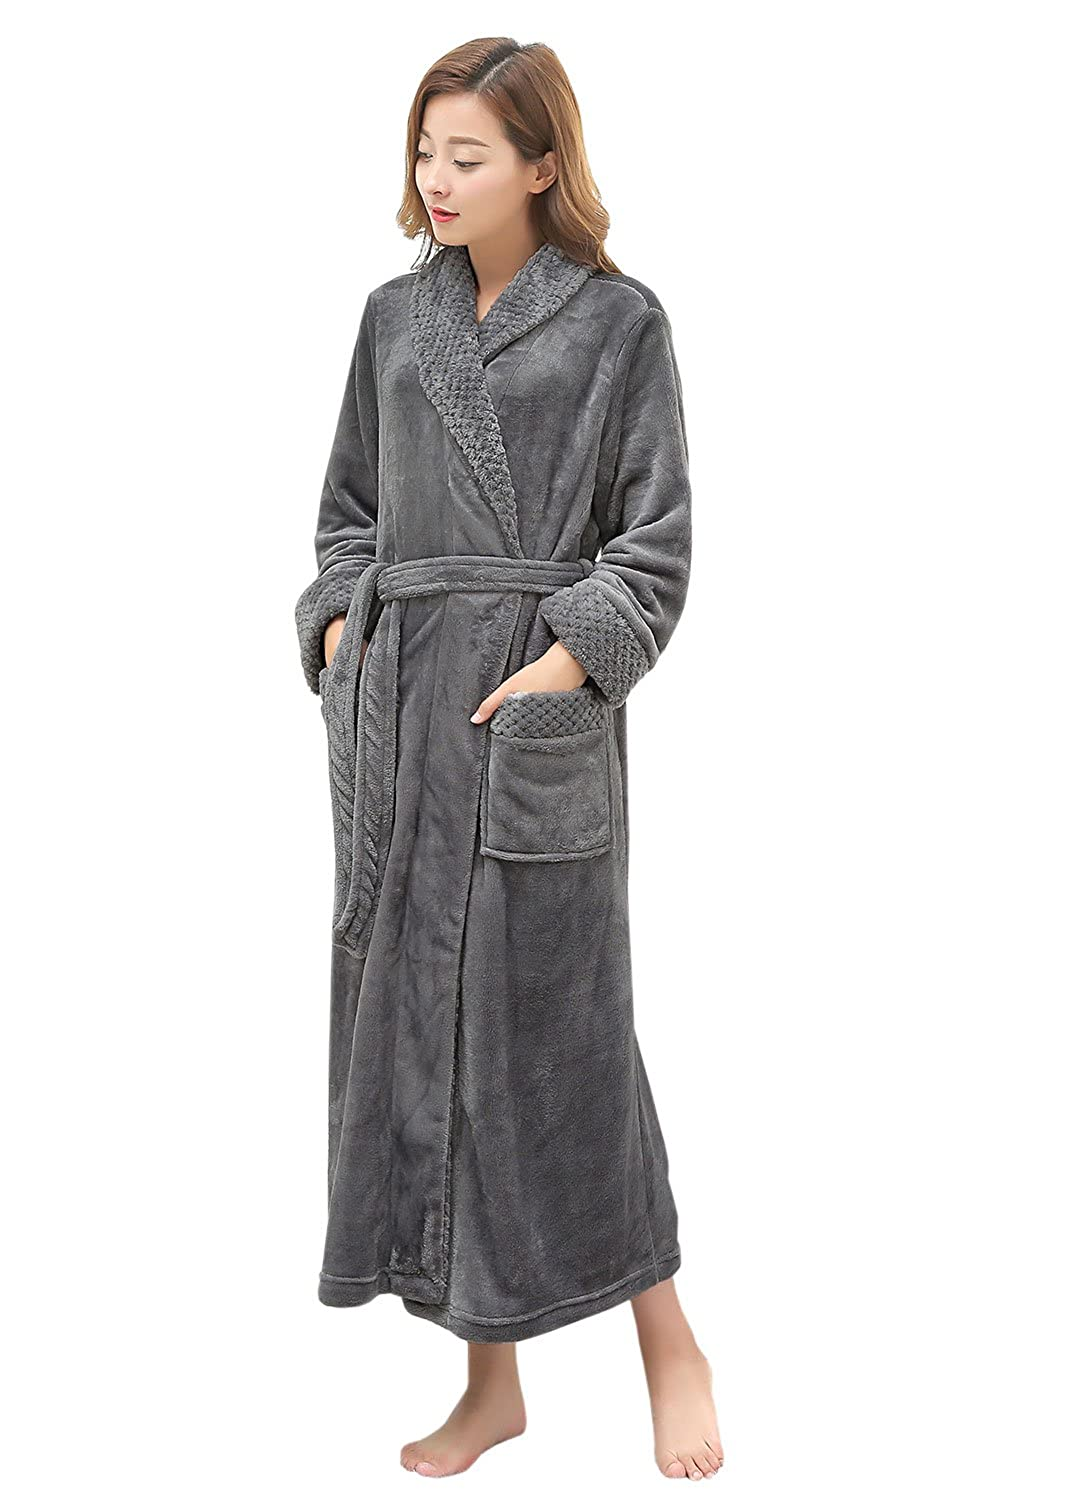 05daa56969 Long Bath Robe for Womens Plush Soft Fleece Bathrobes Nightgown Ladies Pajamas  Sleepwear Housecoat at Amazon Women s Clothing store